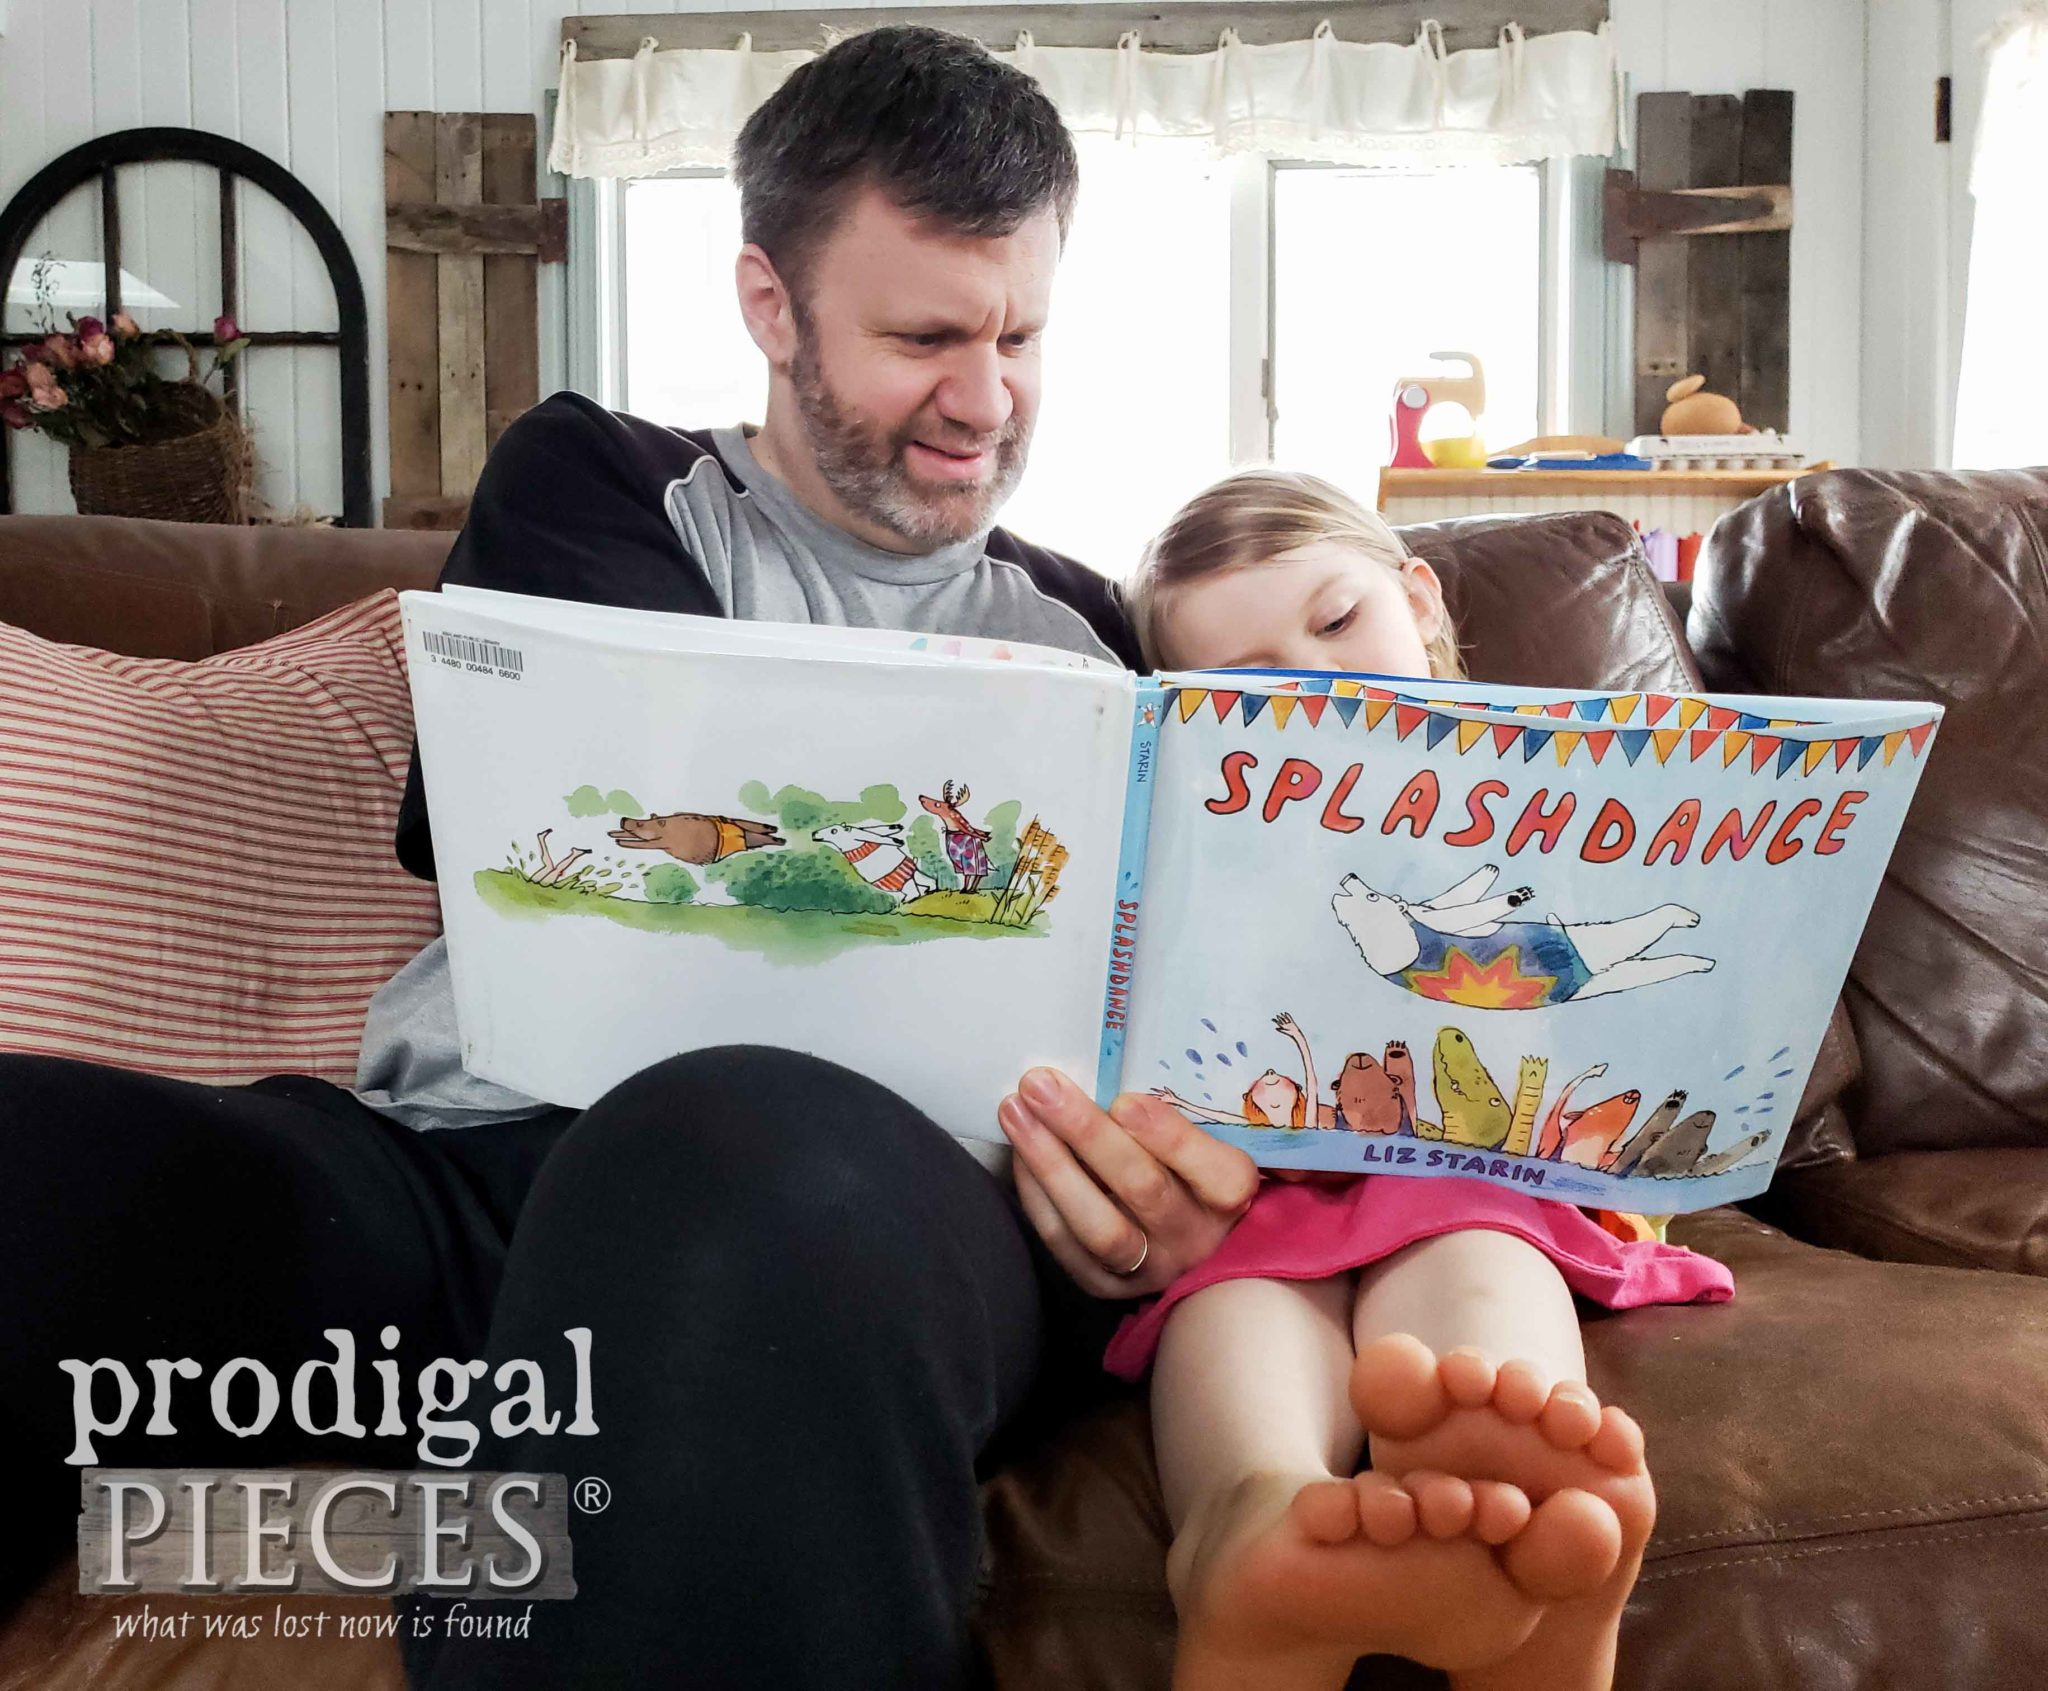 Father and Daughter Reading a Book at HOME | prodigalpieces and the #homeisthekey Habitat for Humanity campaign #prodigalpieces #home